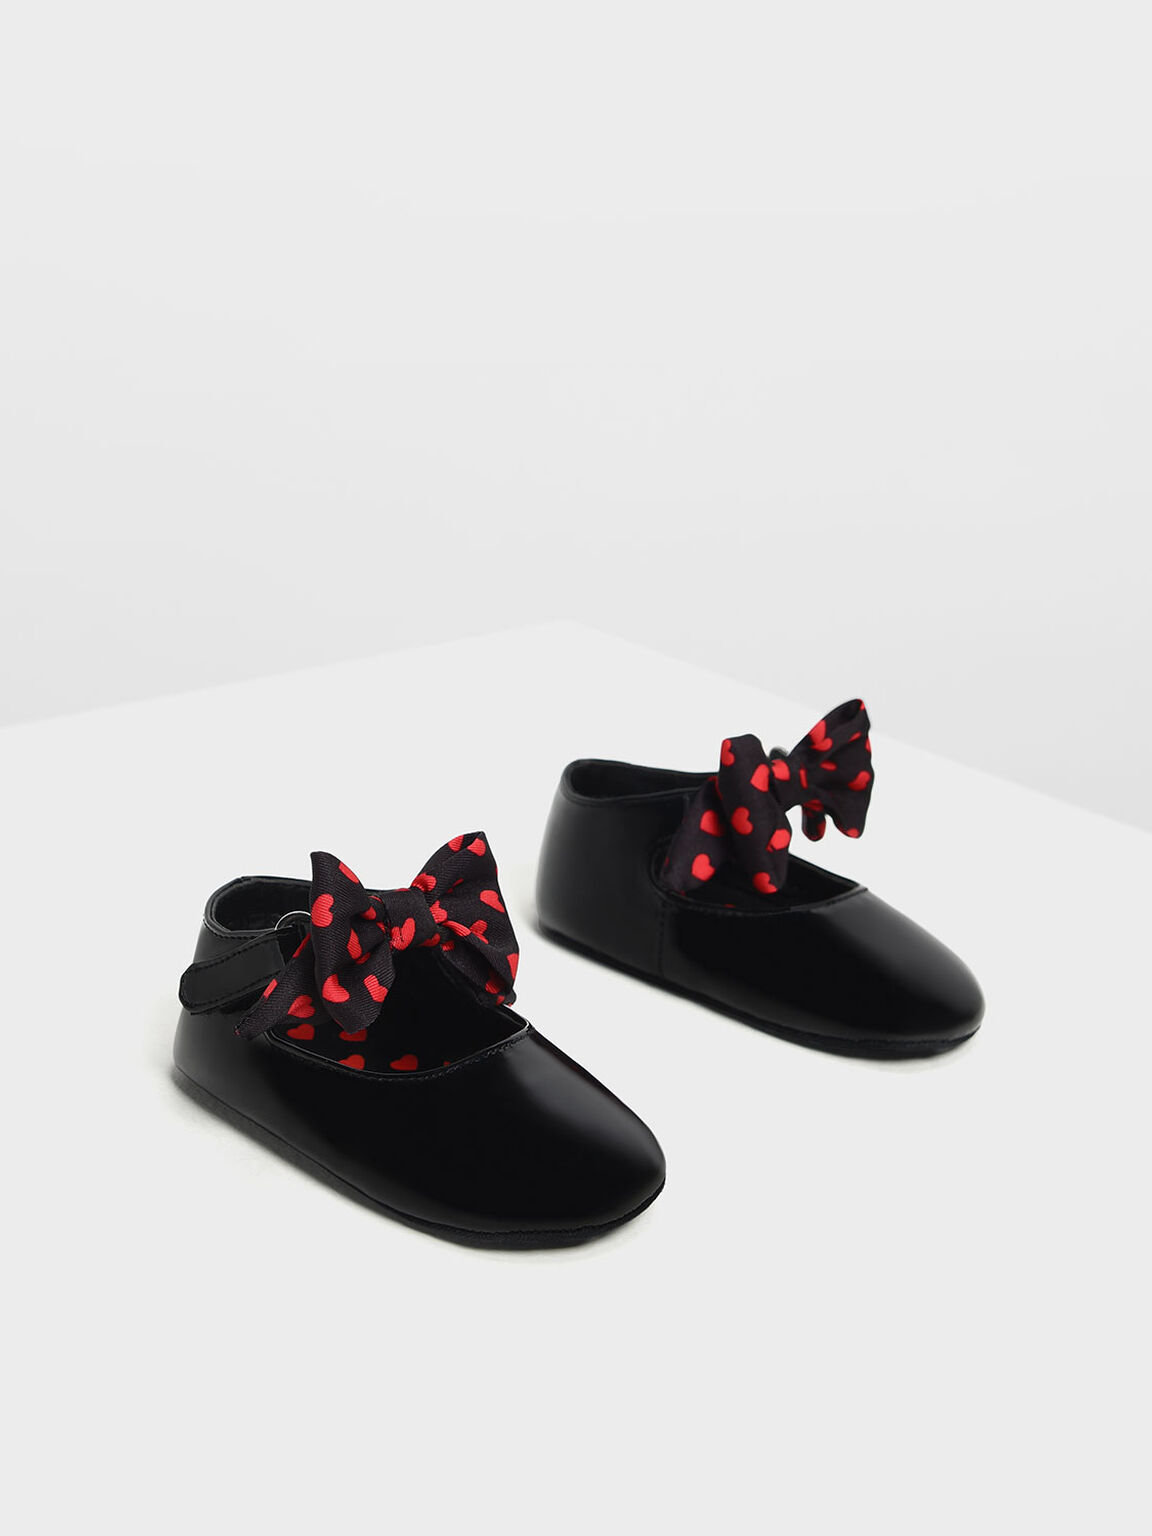 Kids' Heart Print Mary Janes, Black, hi-res